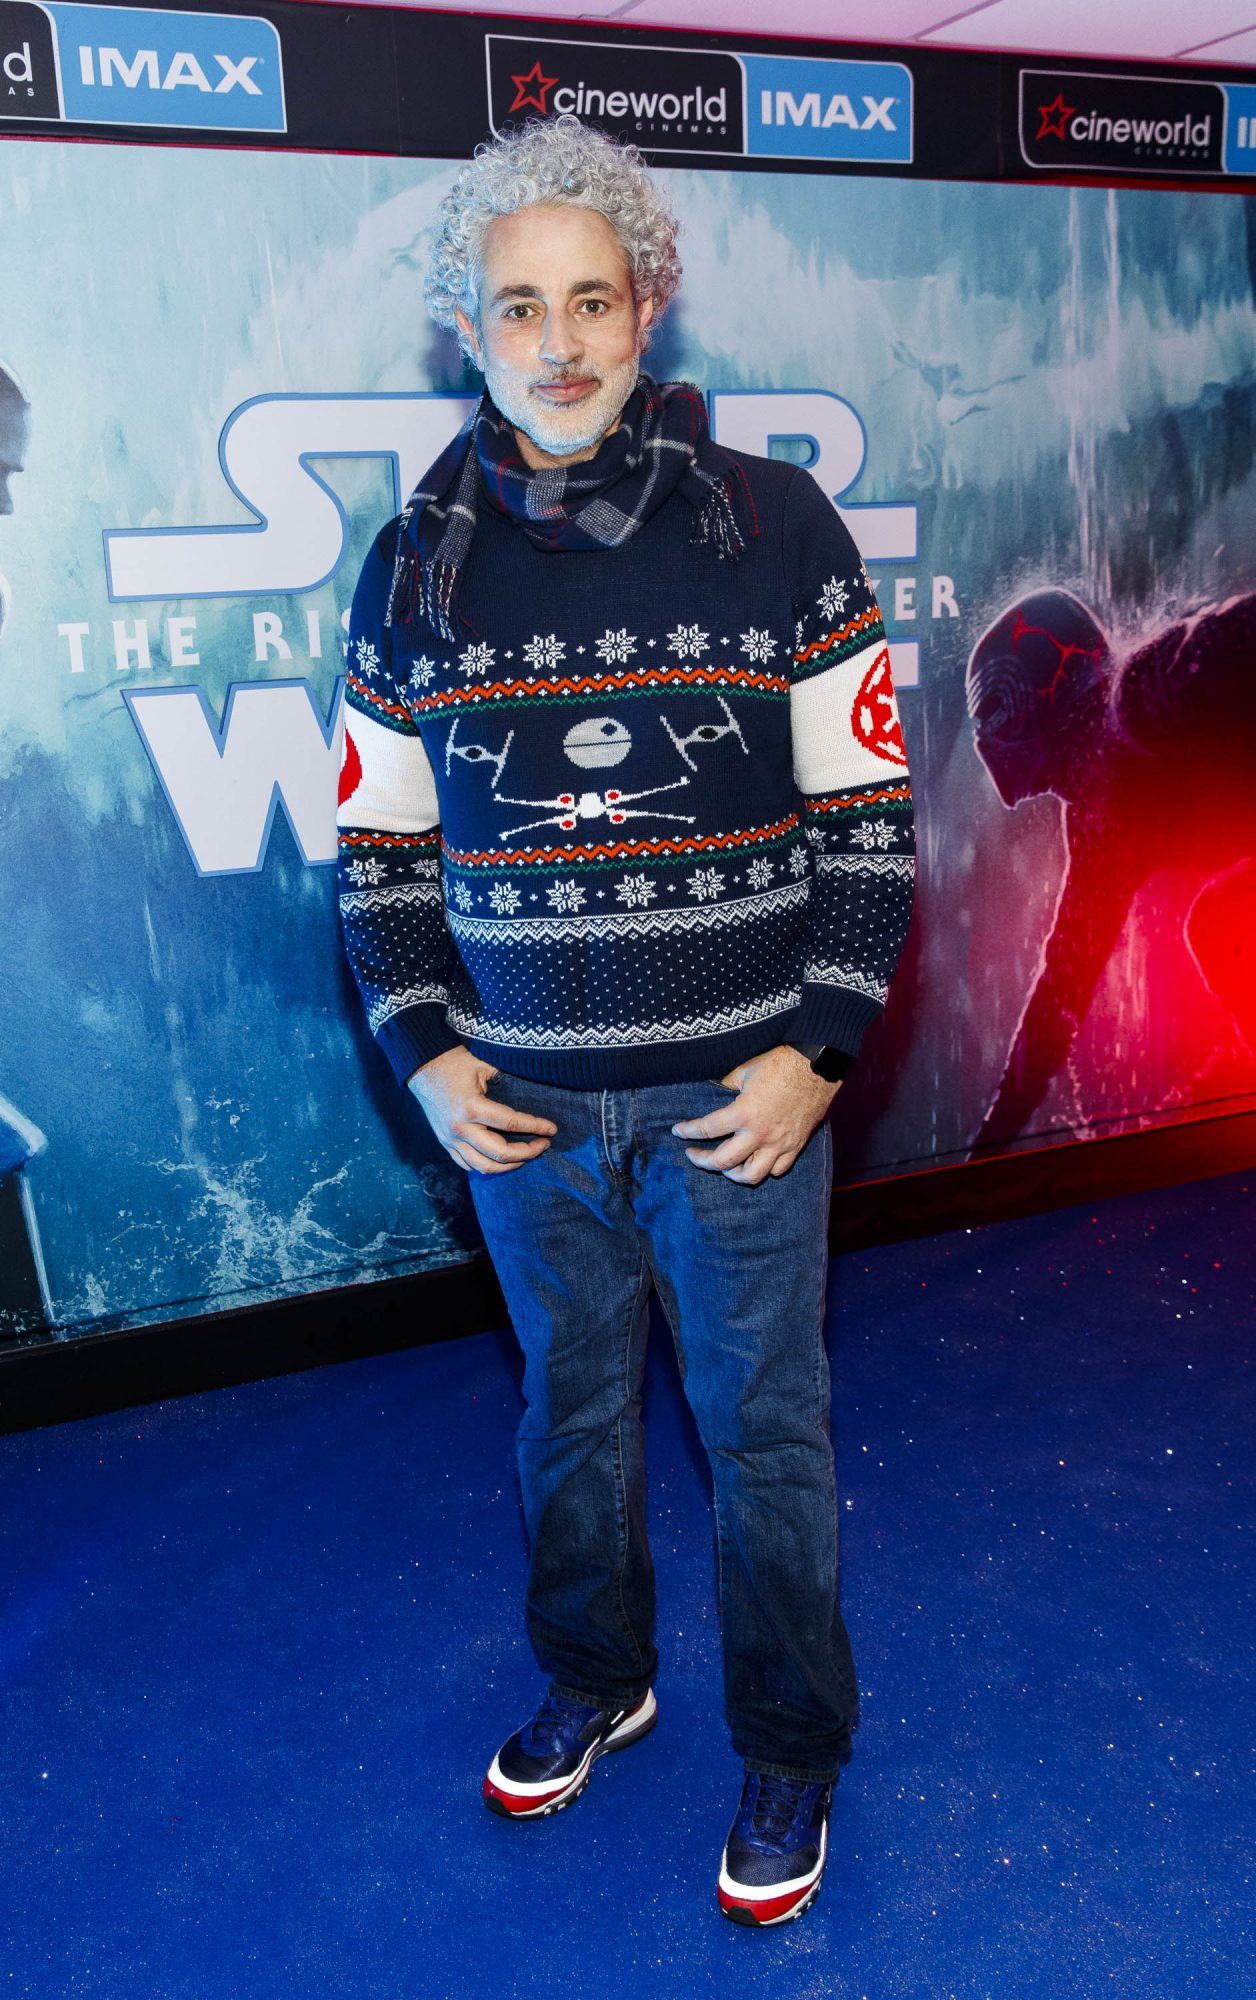 Baz Ashmawy pictured at the Irish premiere screening of Star Wars: The Rise of Skywalker at Cineworld, Dublin. Picture: Andres Poveda